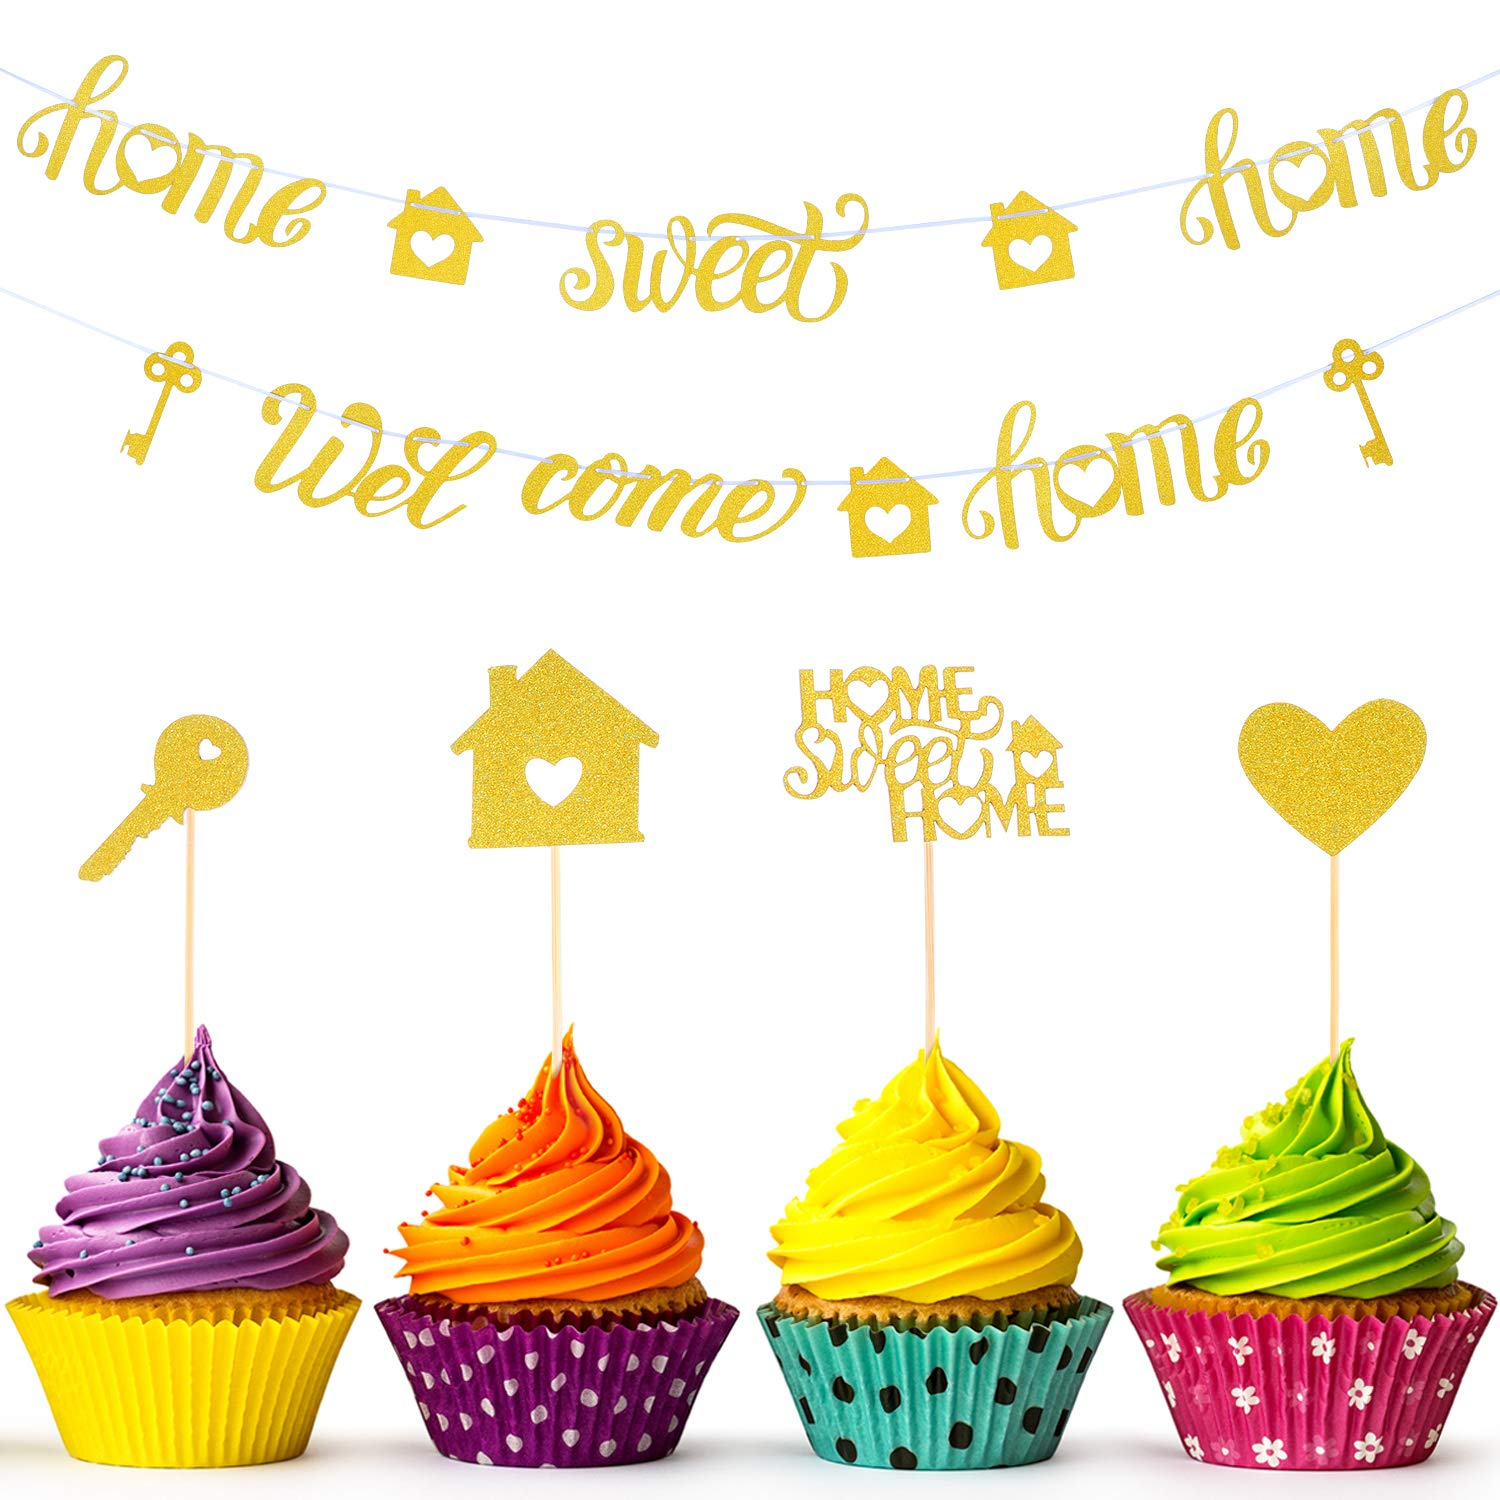 55 Pieces Sweet Home Cupcake Toppers and 2 Pieces Welcome Home Banner Home Sweet Home Banner for House Warming Party Decoration Supplies